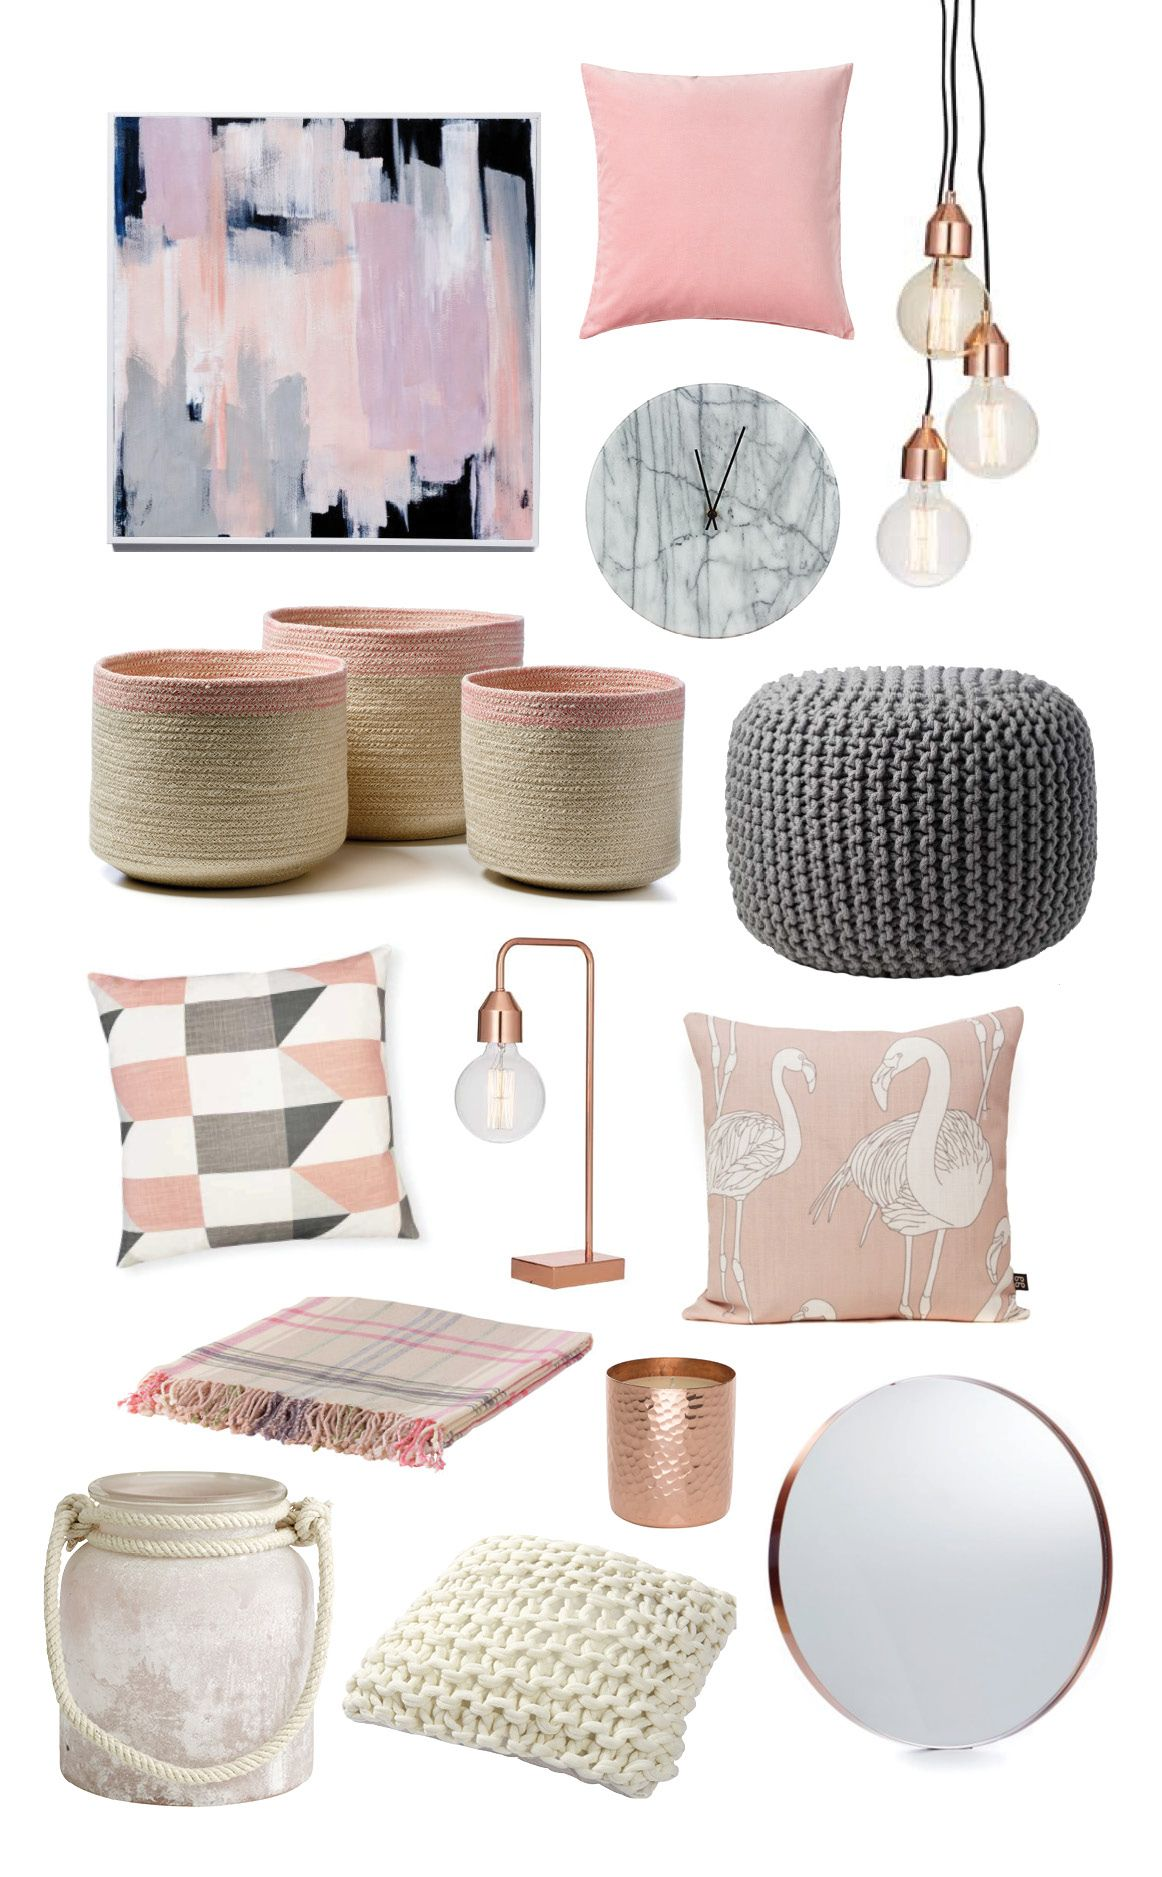 Trending items blush pink click through for stockists Gold accessories for living room